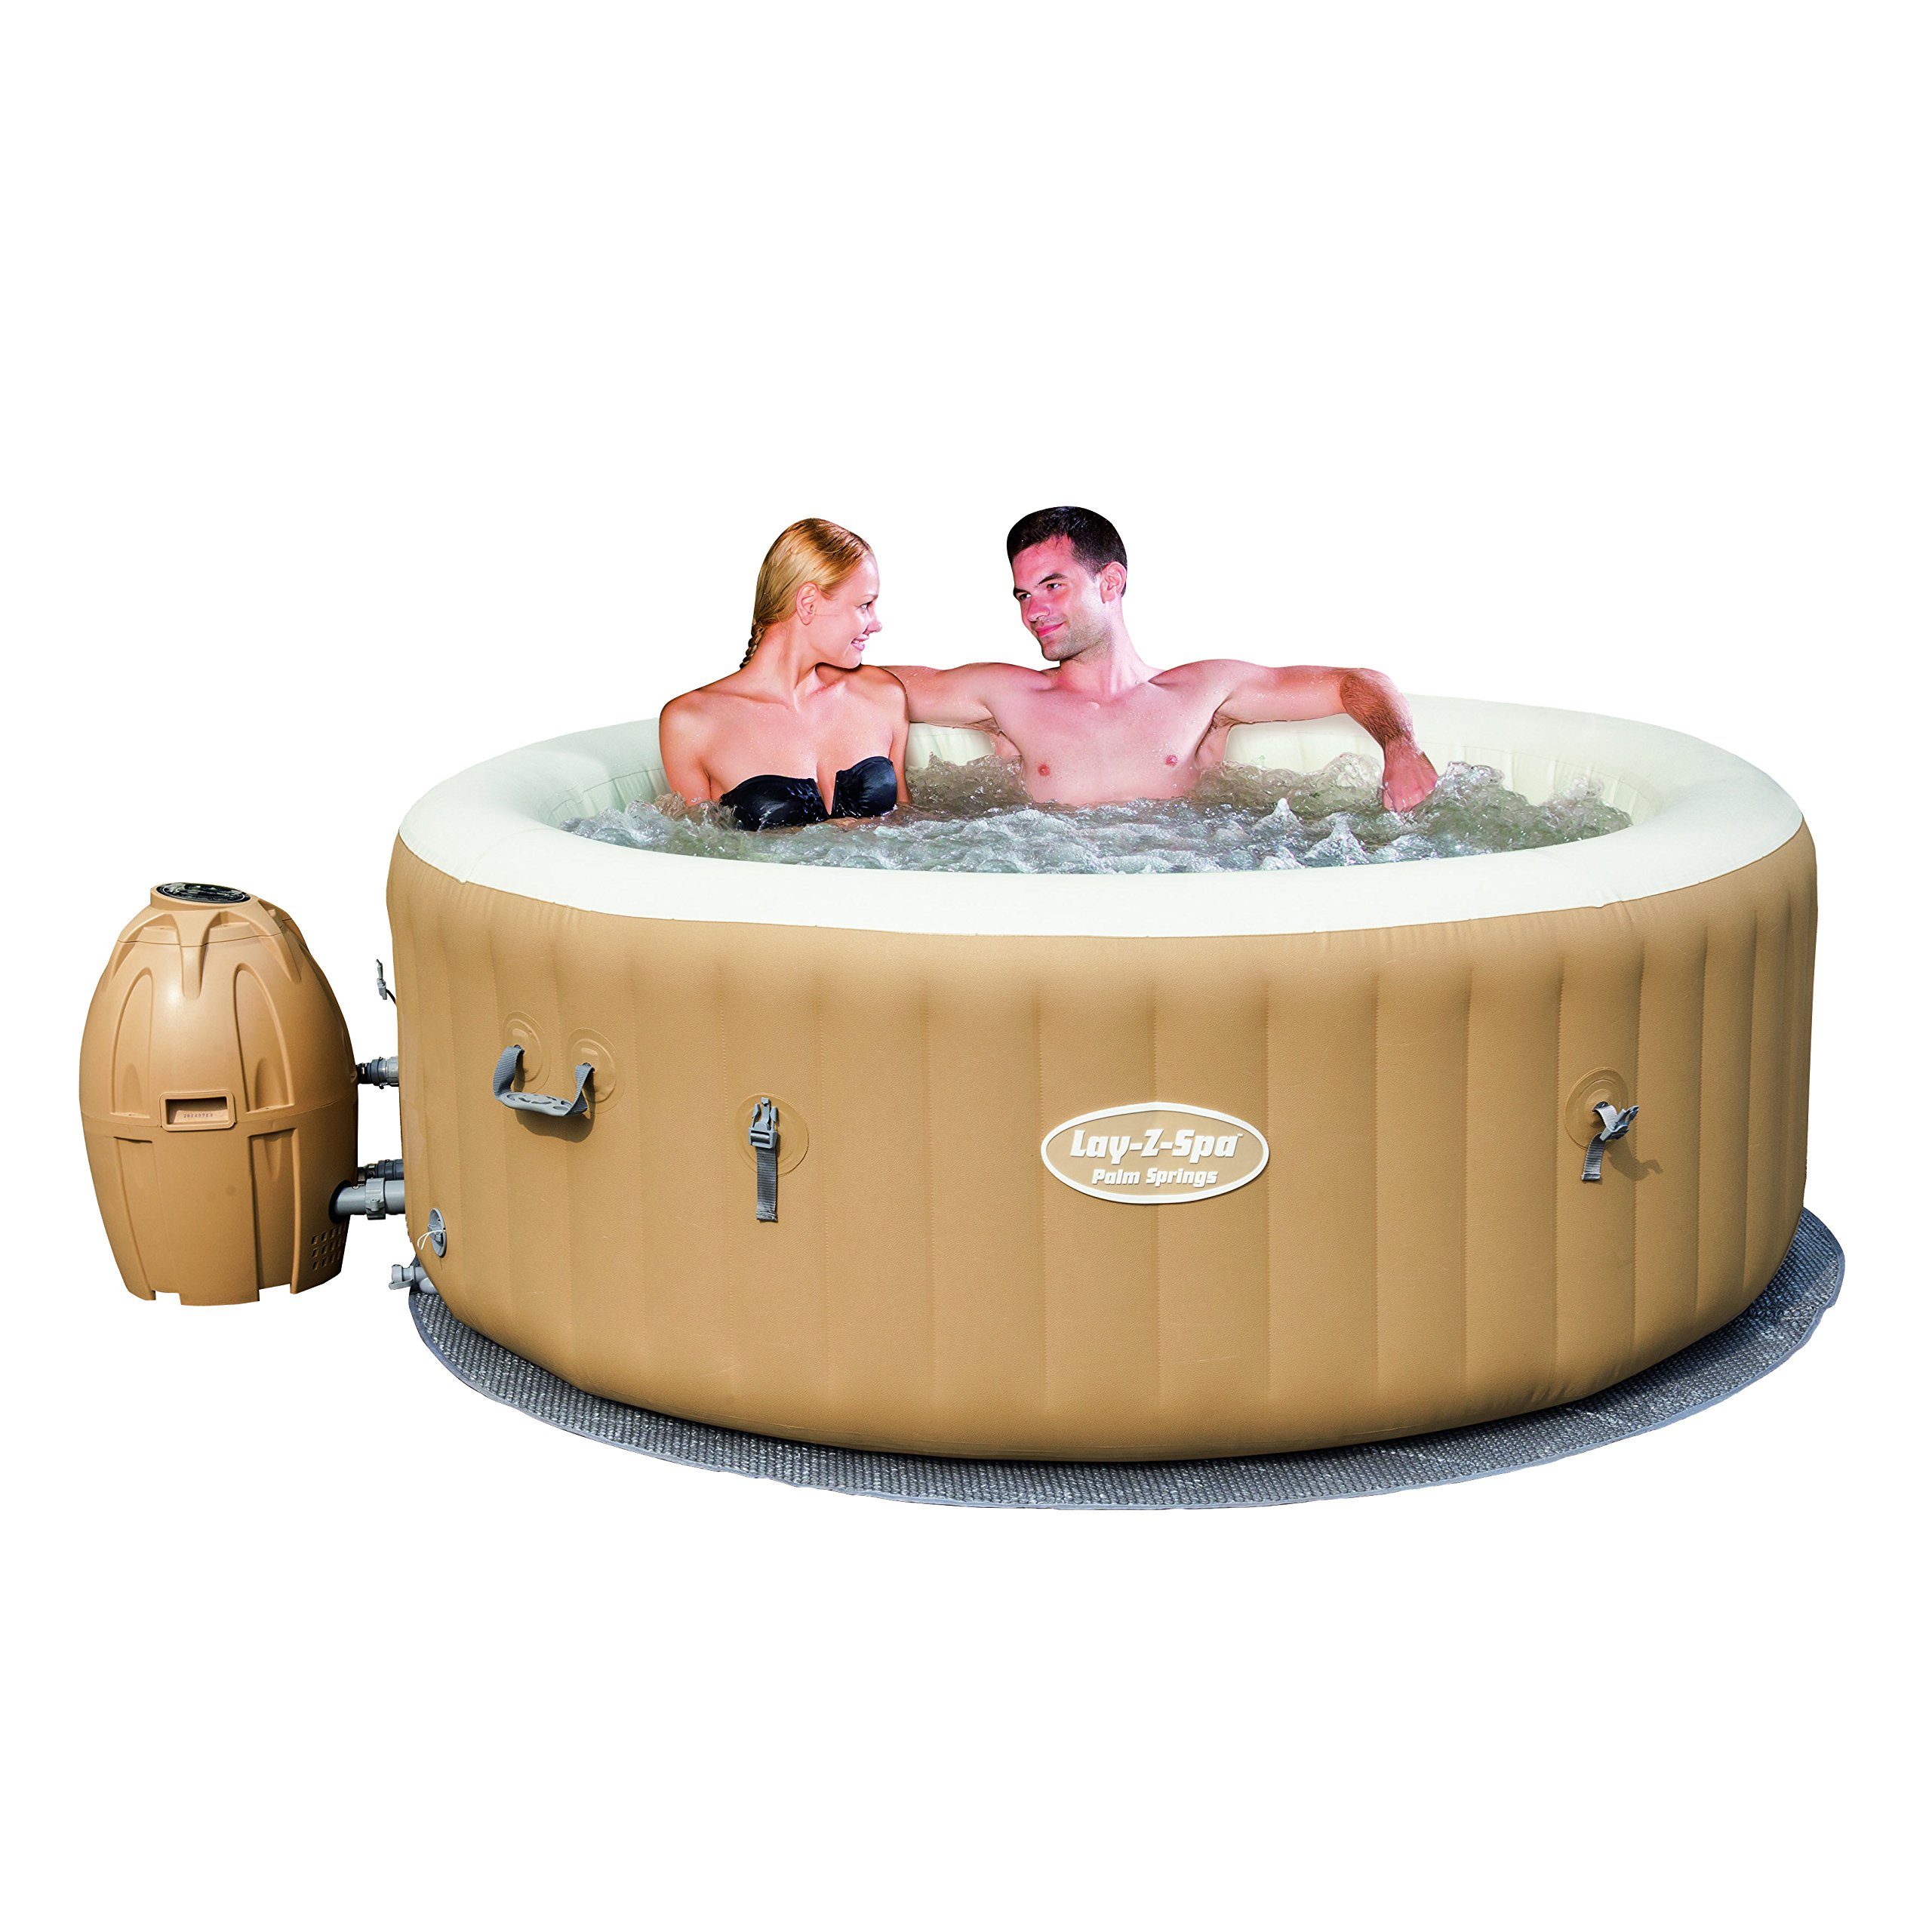 SaluSpa Palm Springs AirJet Inflatable 6-Person Hot Tub Free ...